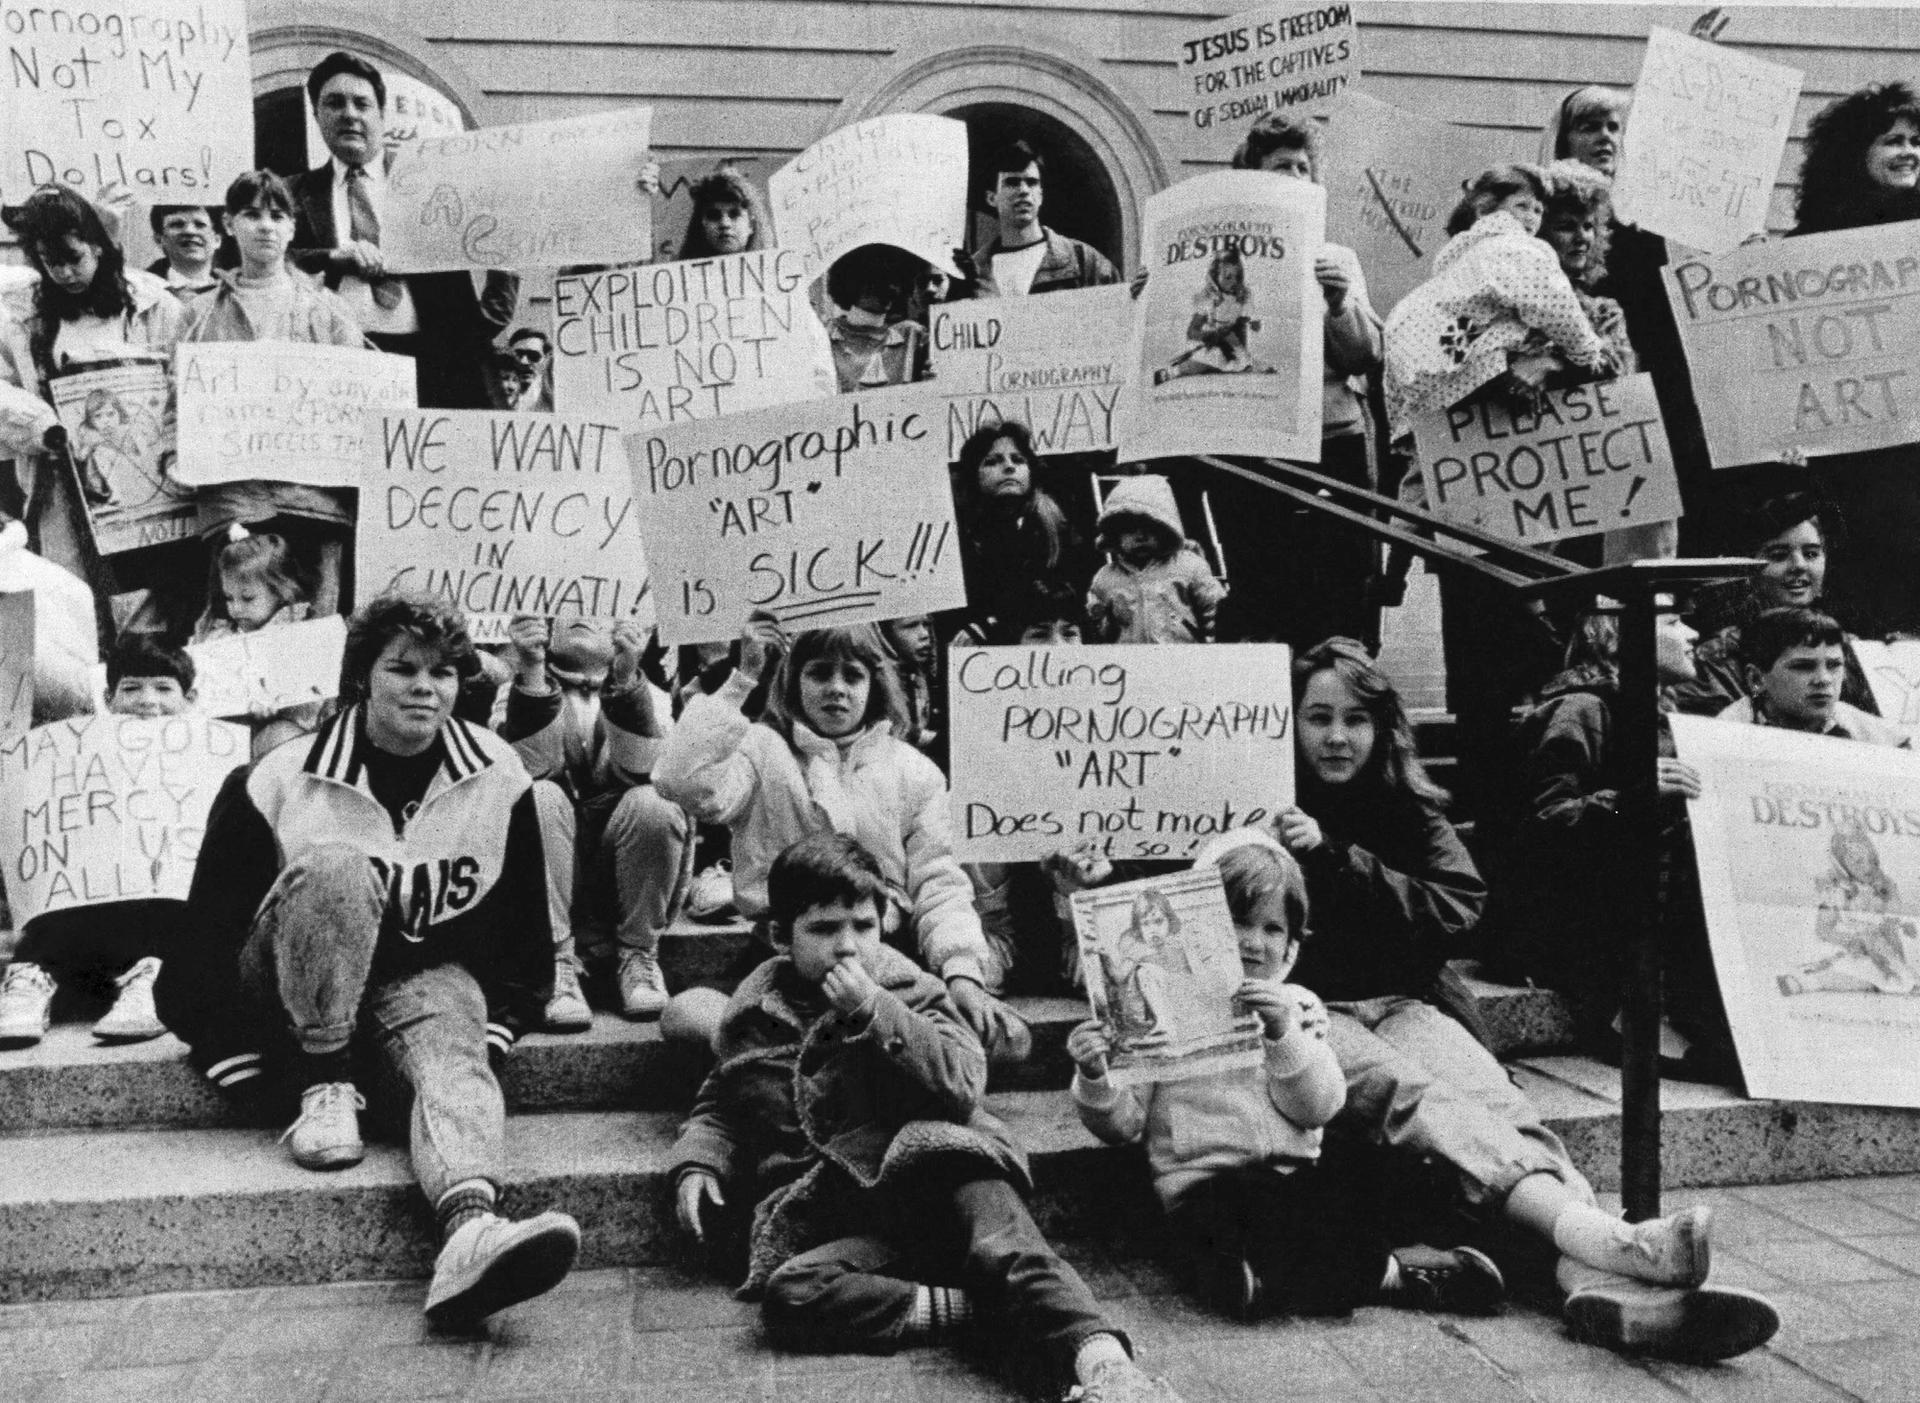 Hundreds of anti-porn protesters gathered outside the Hamilton County Courthouse to protest the Robert Mapplethorpe photo exhibition in Cincinnati Photo: Bettmann